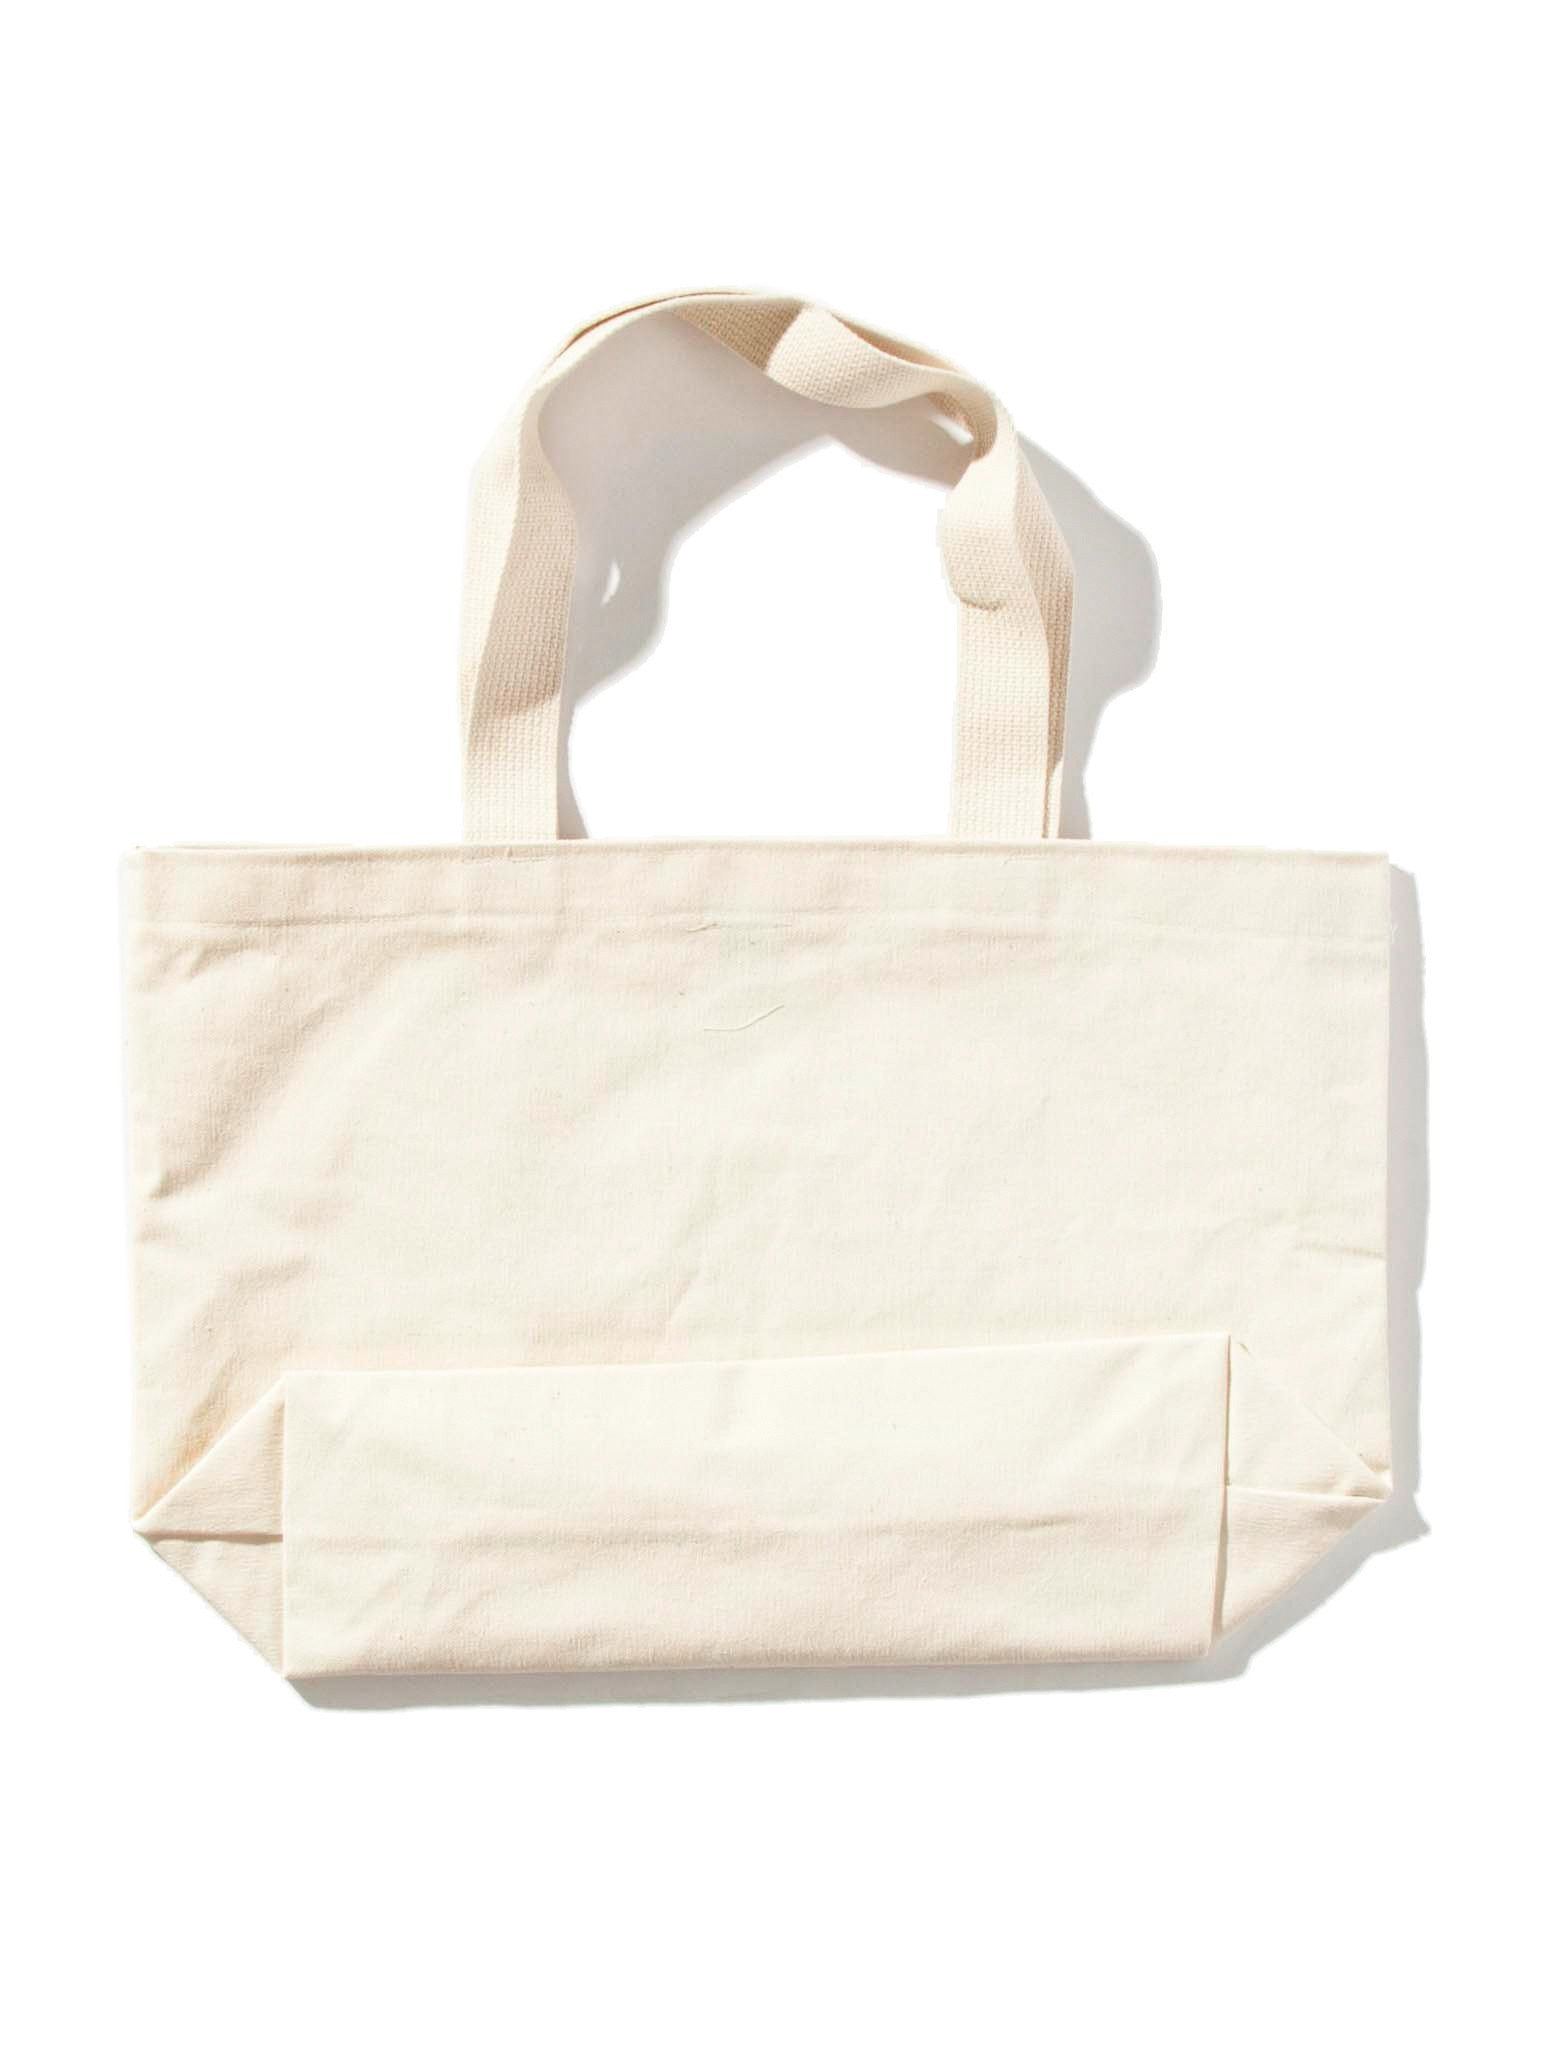 New Order Tote (Canvas)